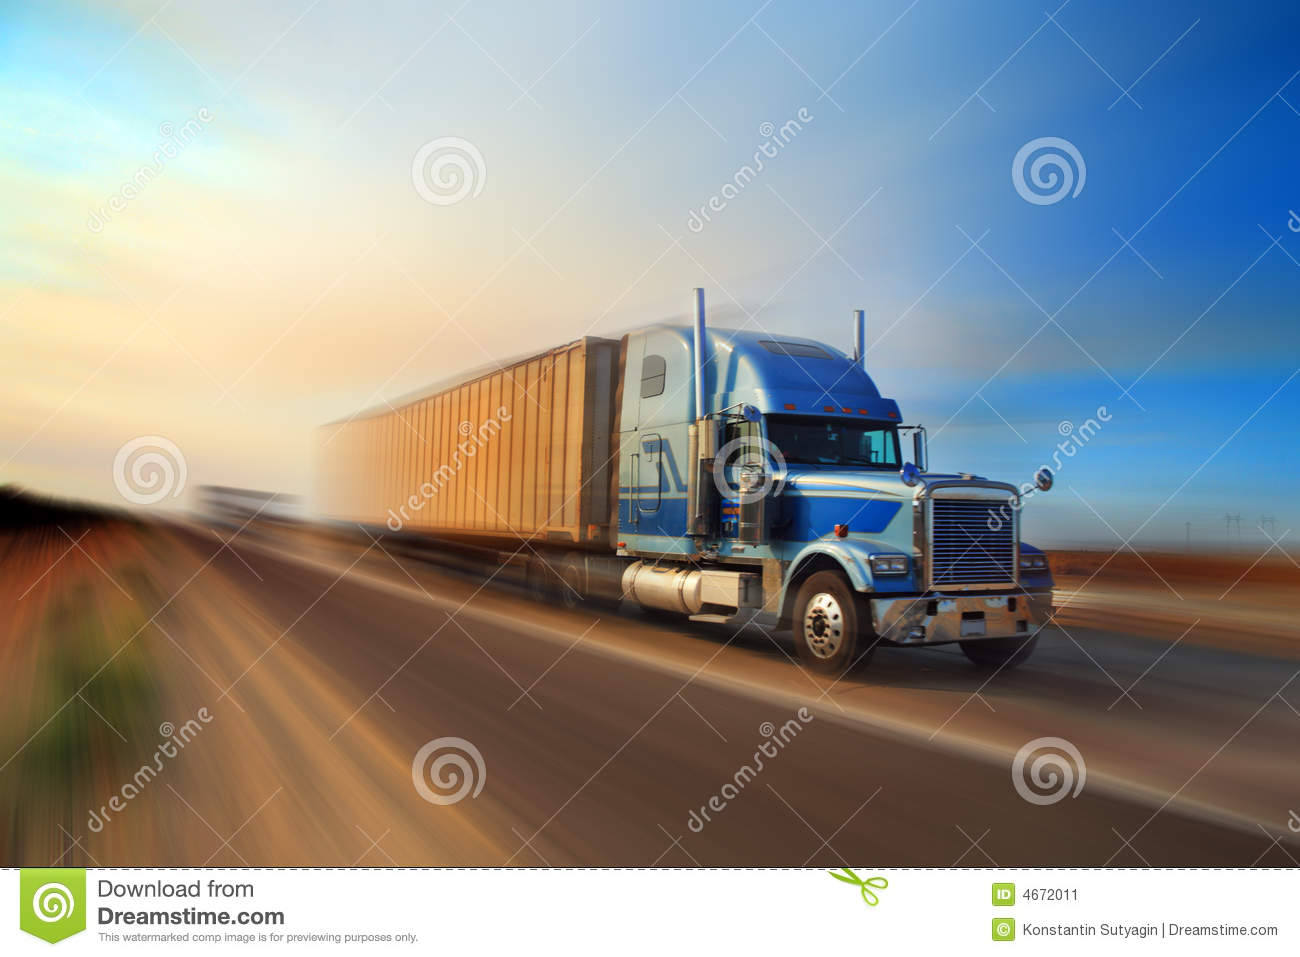 Truck freight delivery